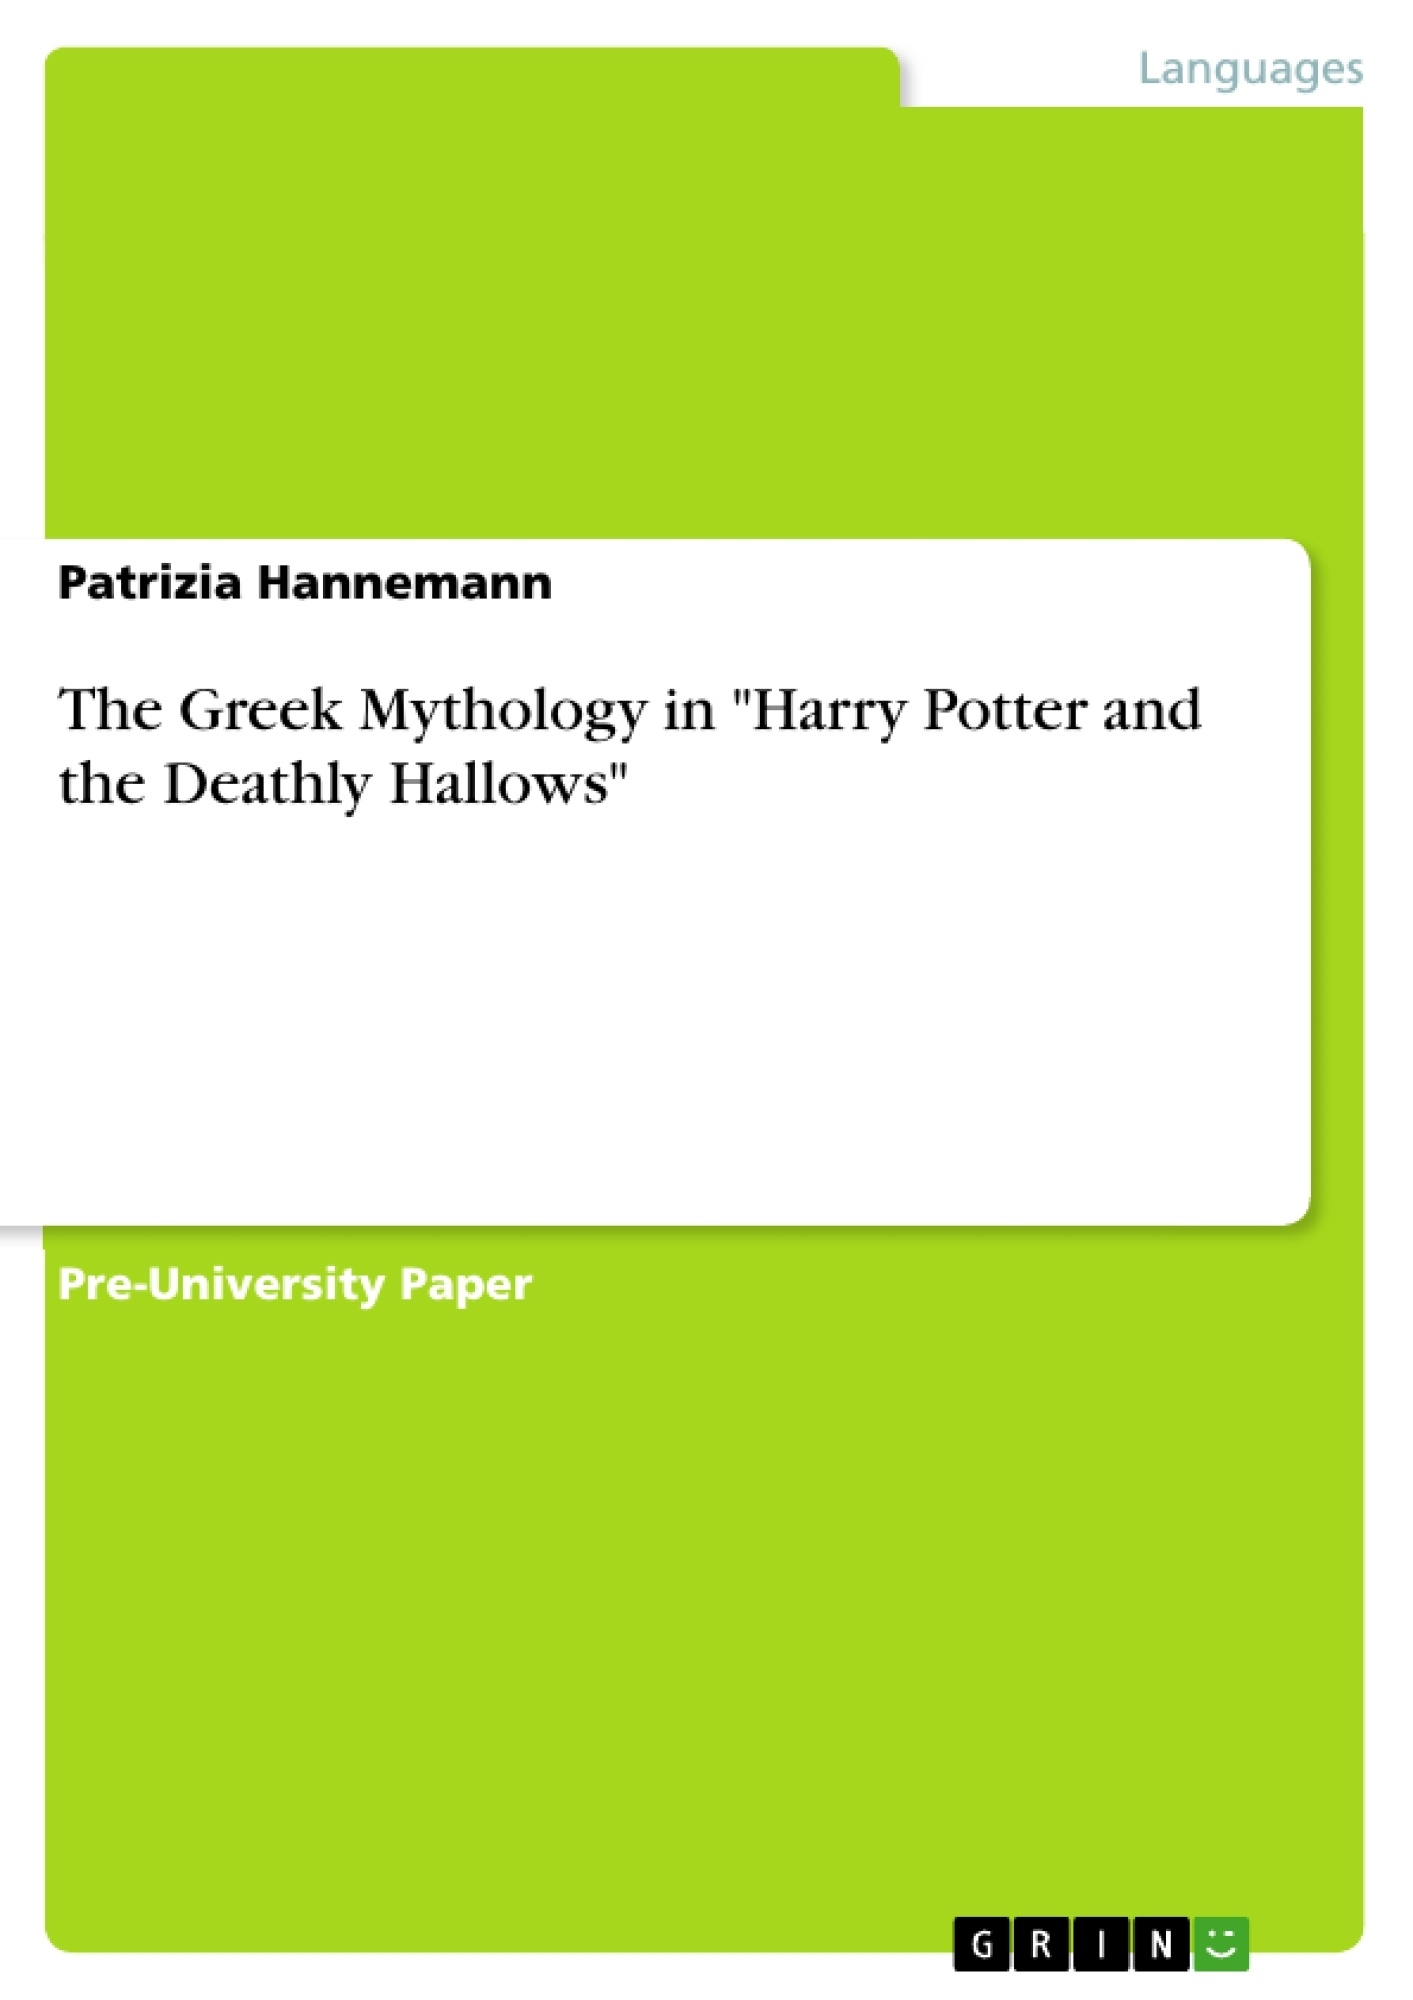 the greek mythology in harry potter and the deathly hallows the greek mythology in harry potter and the deathly hallows publish your master s thesis bachelor s thesis essay or term paper